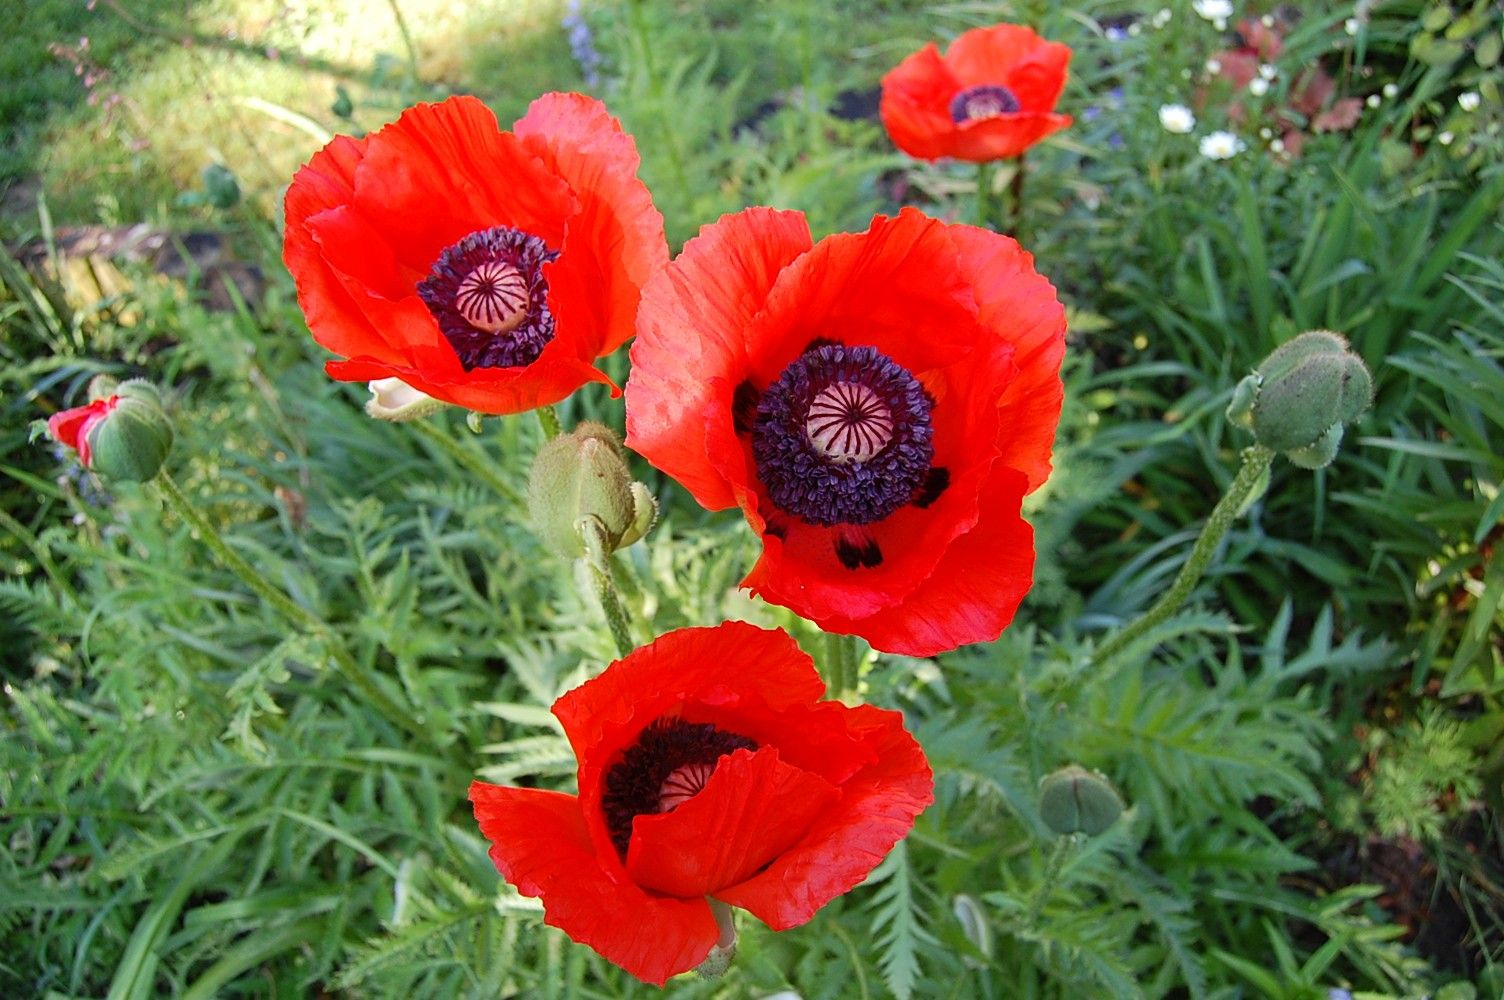 I love poppies, they just shout orange!